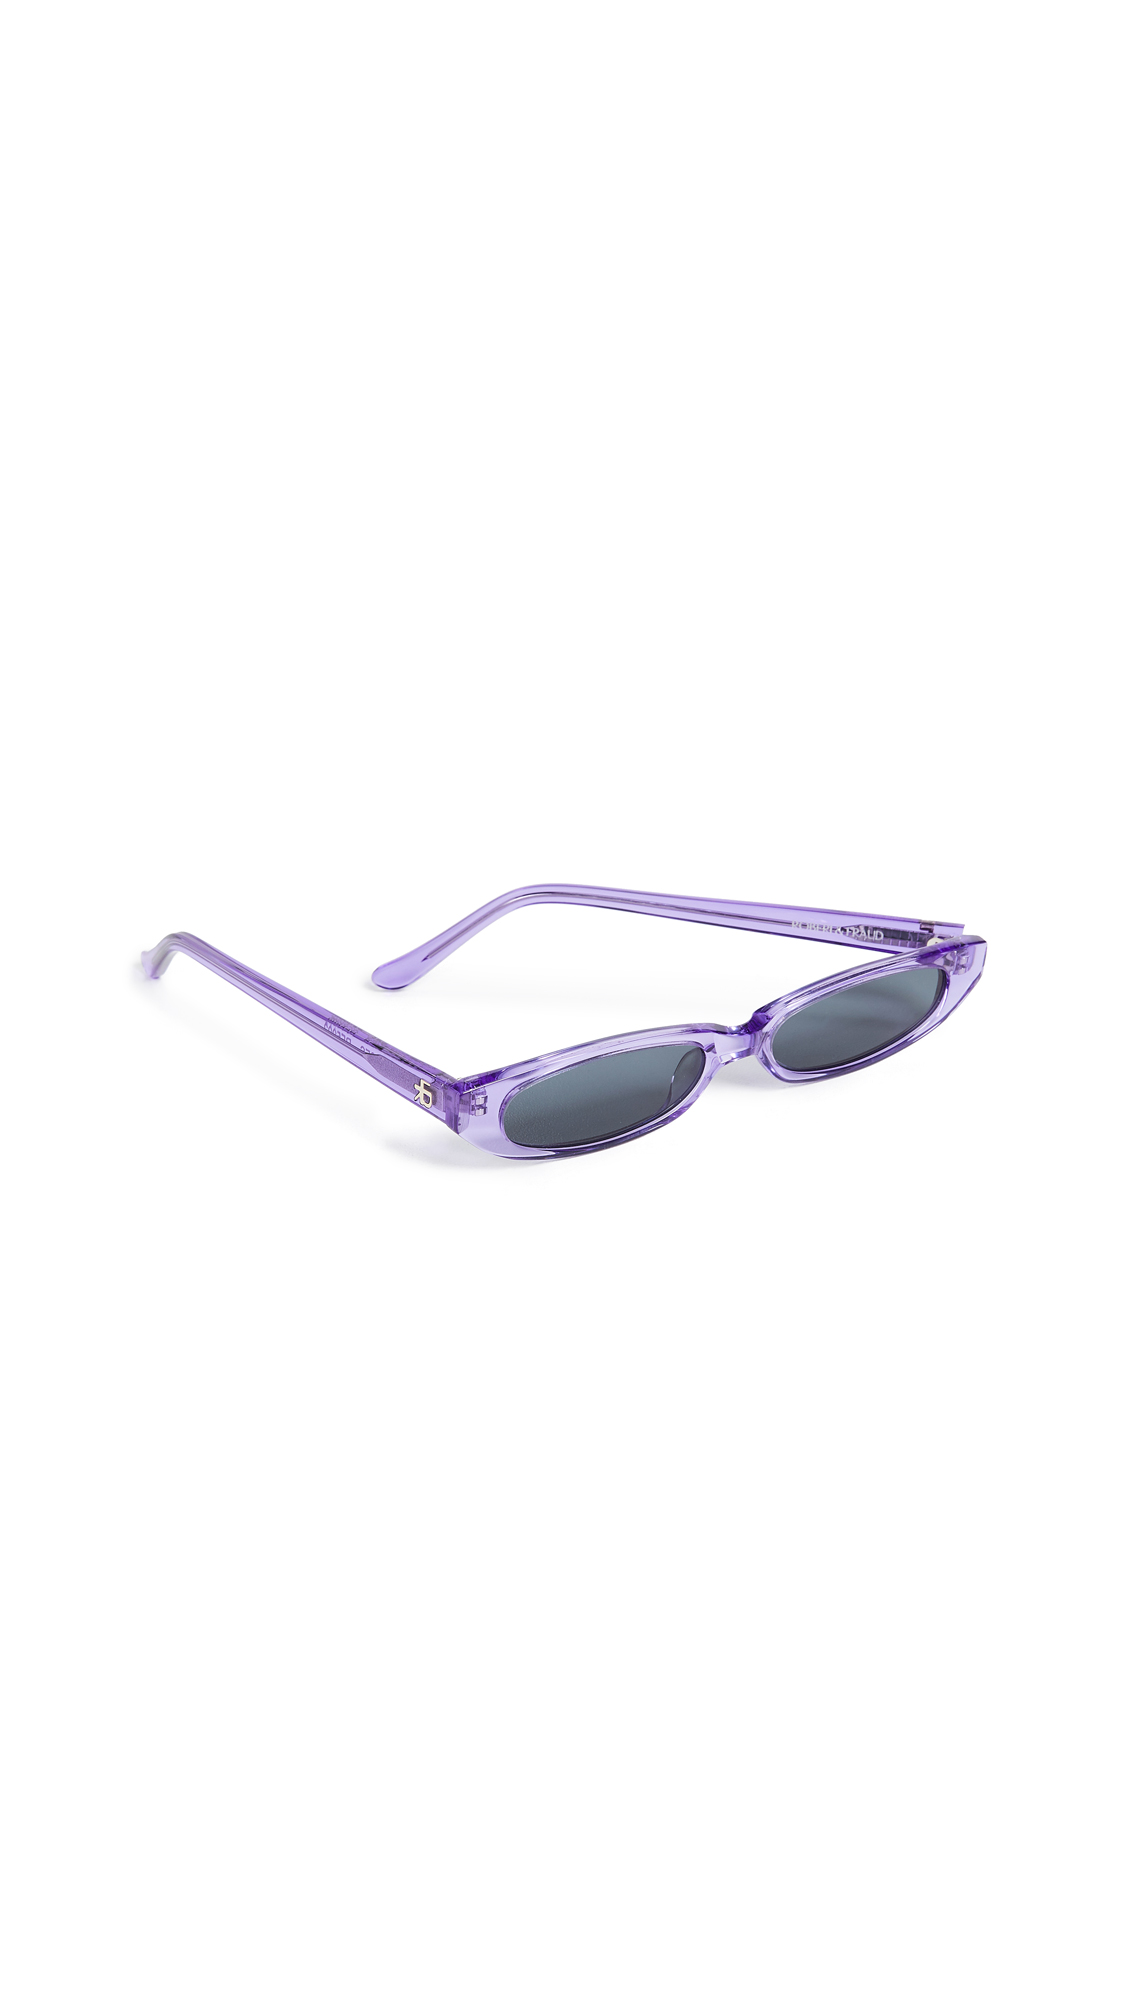 ROBERI & FRAUD Frances Sunglasses in Purple